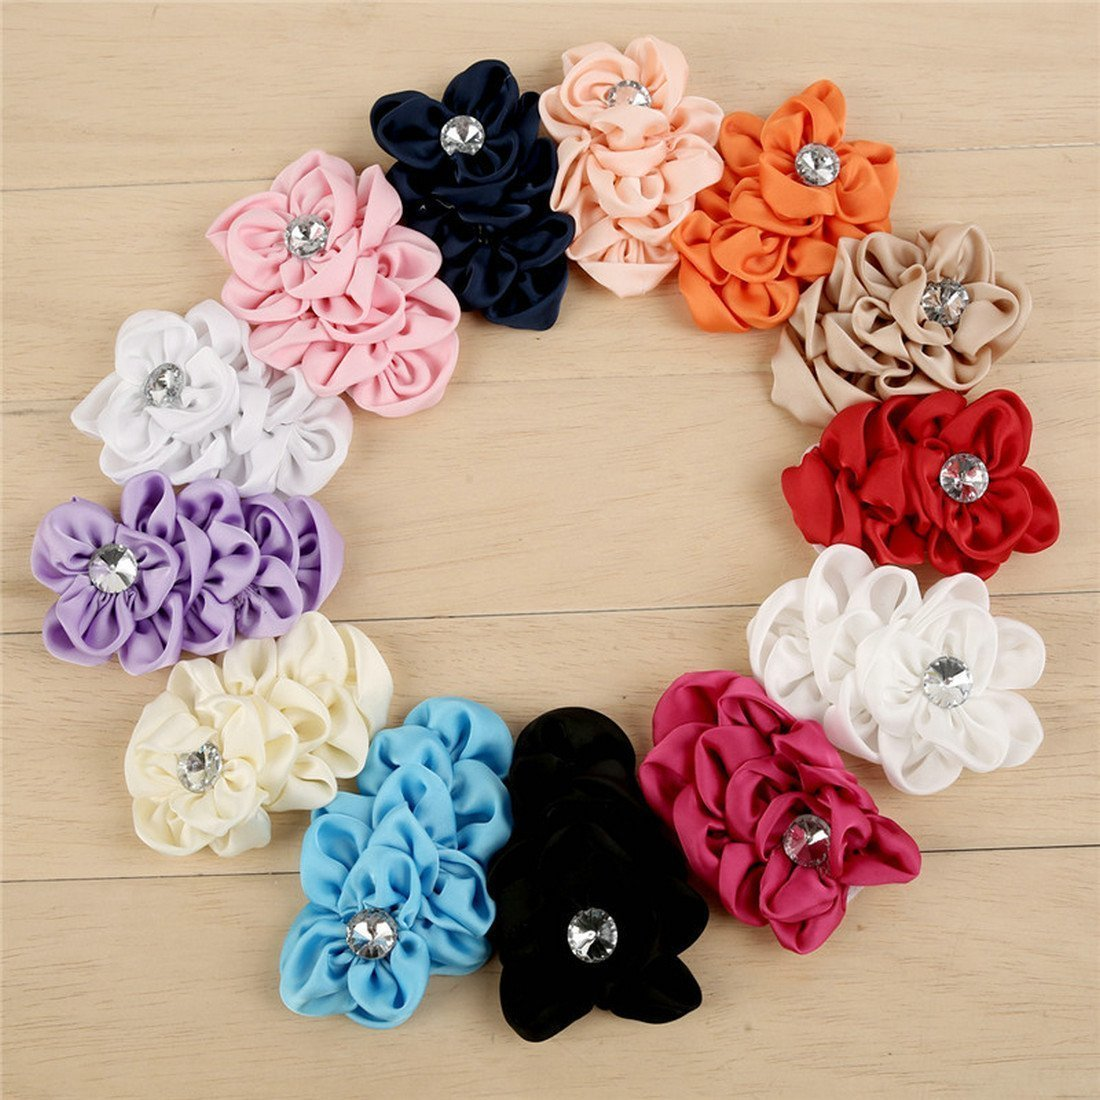 Mixed Colors Flat-bottomed Beautiful Bohemian Style DIY Handmade Decorative Chiffon Flowers with Pearl and Rhinestone for Hair Clips,Wedding Flowers(10Pcs) Chiffon scale Flowers